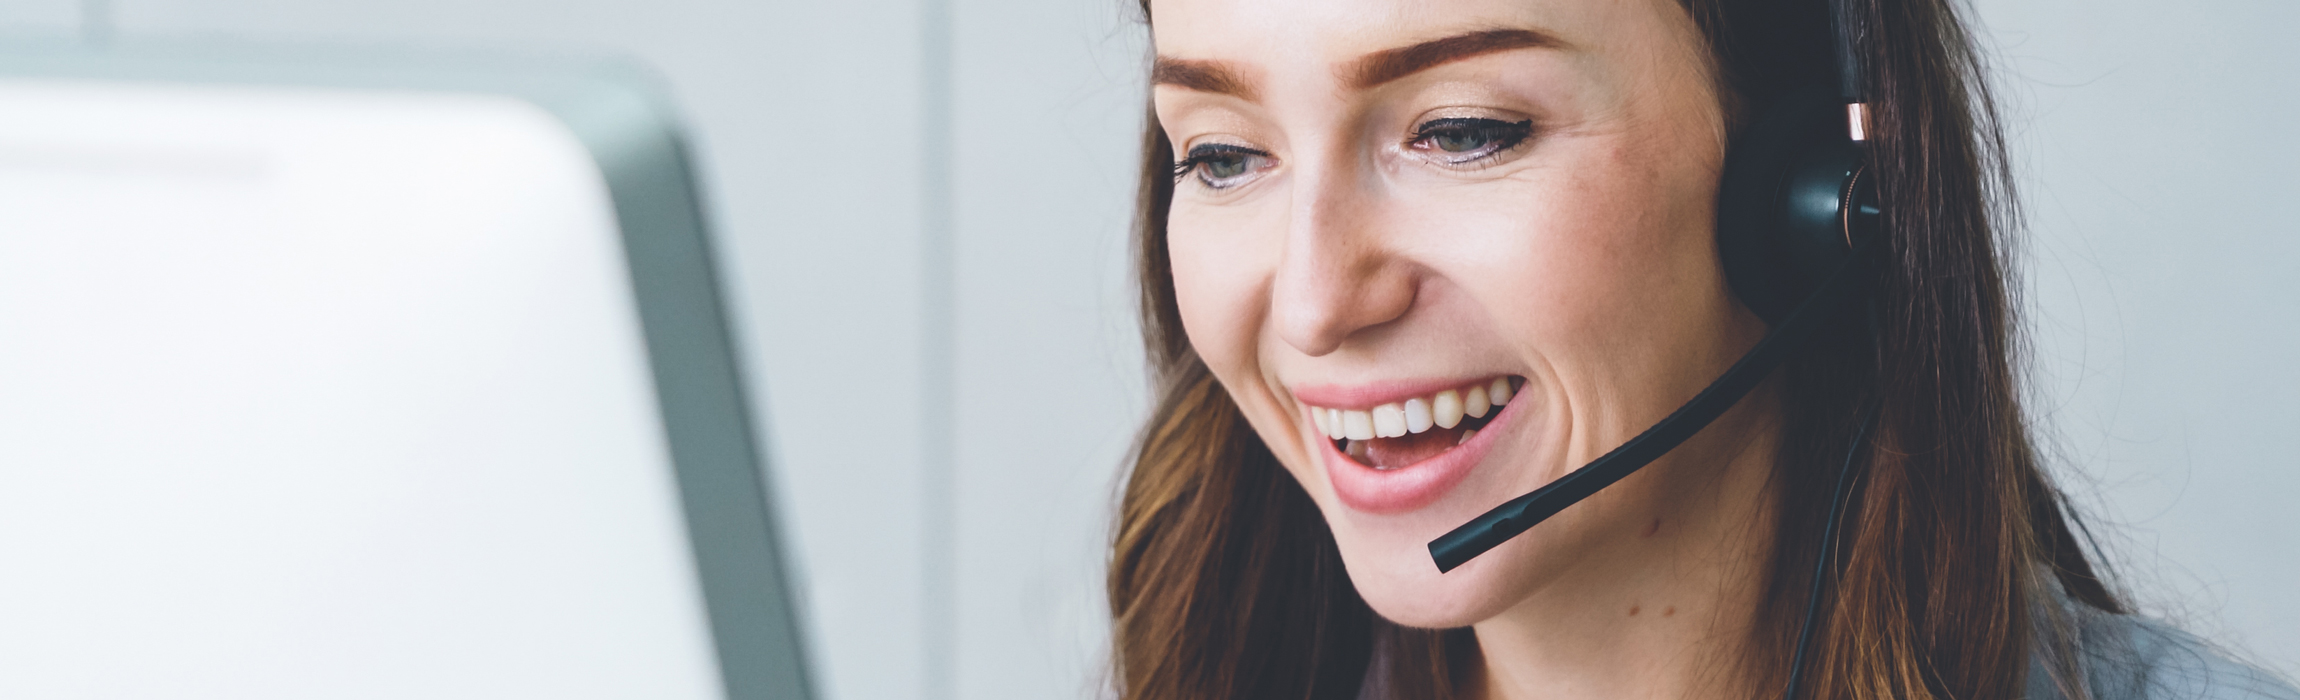 ny-41506446-business-people-wearing-headset-working-in-office